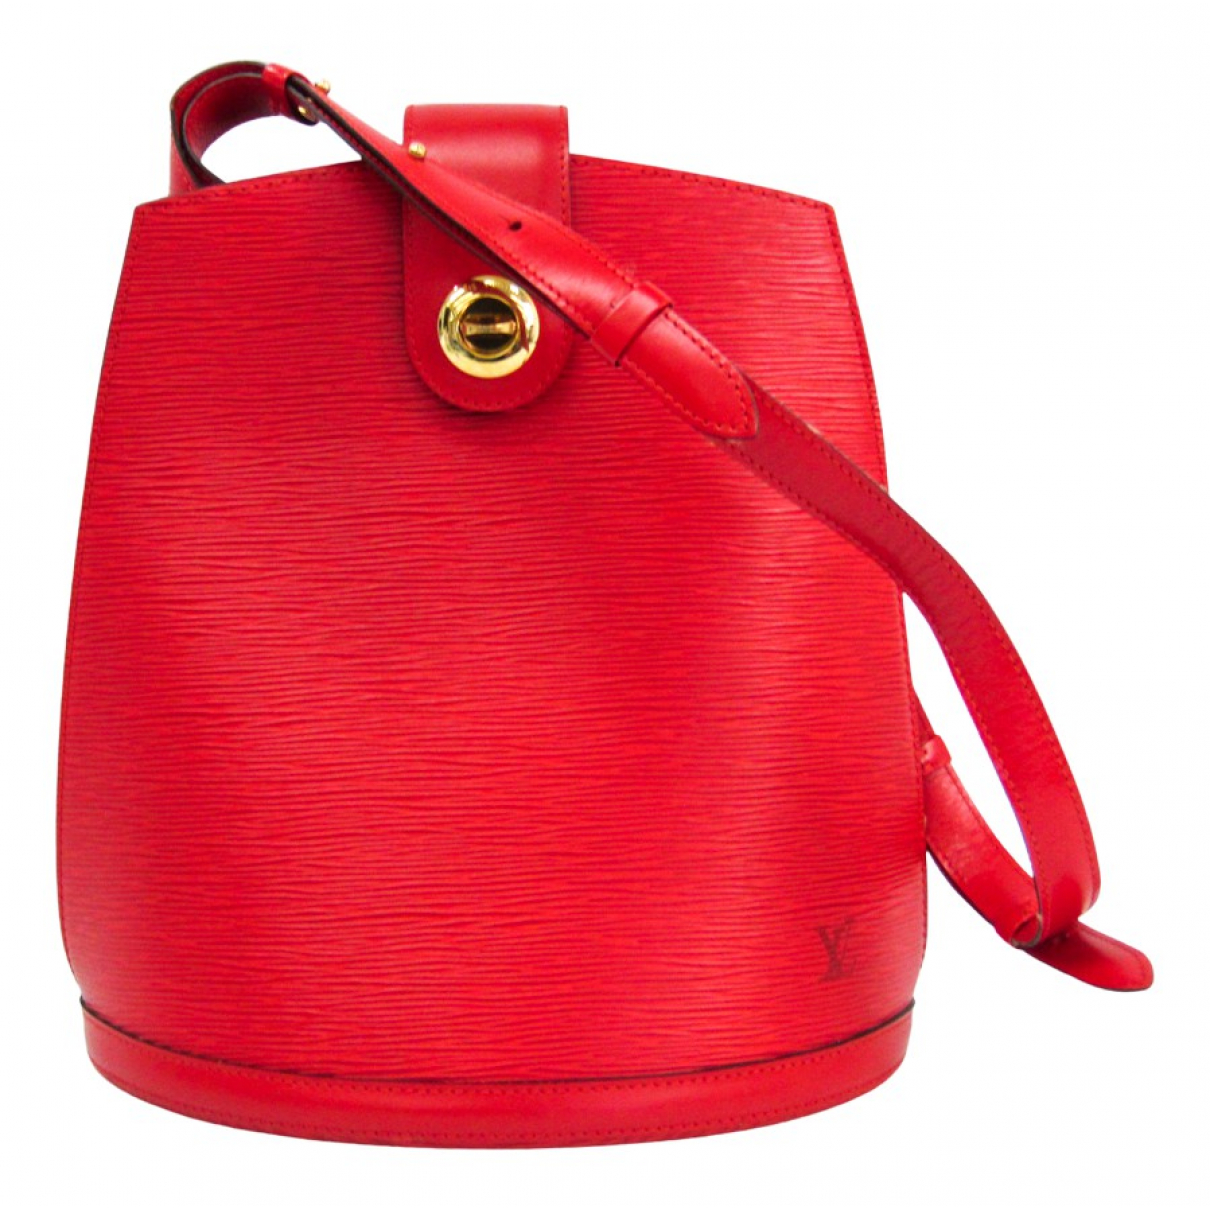 Louis Vuitton Cluny Vintage Red Leather handbag for Women N